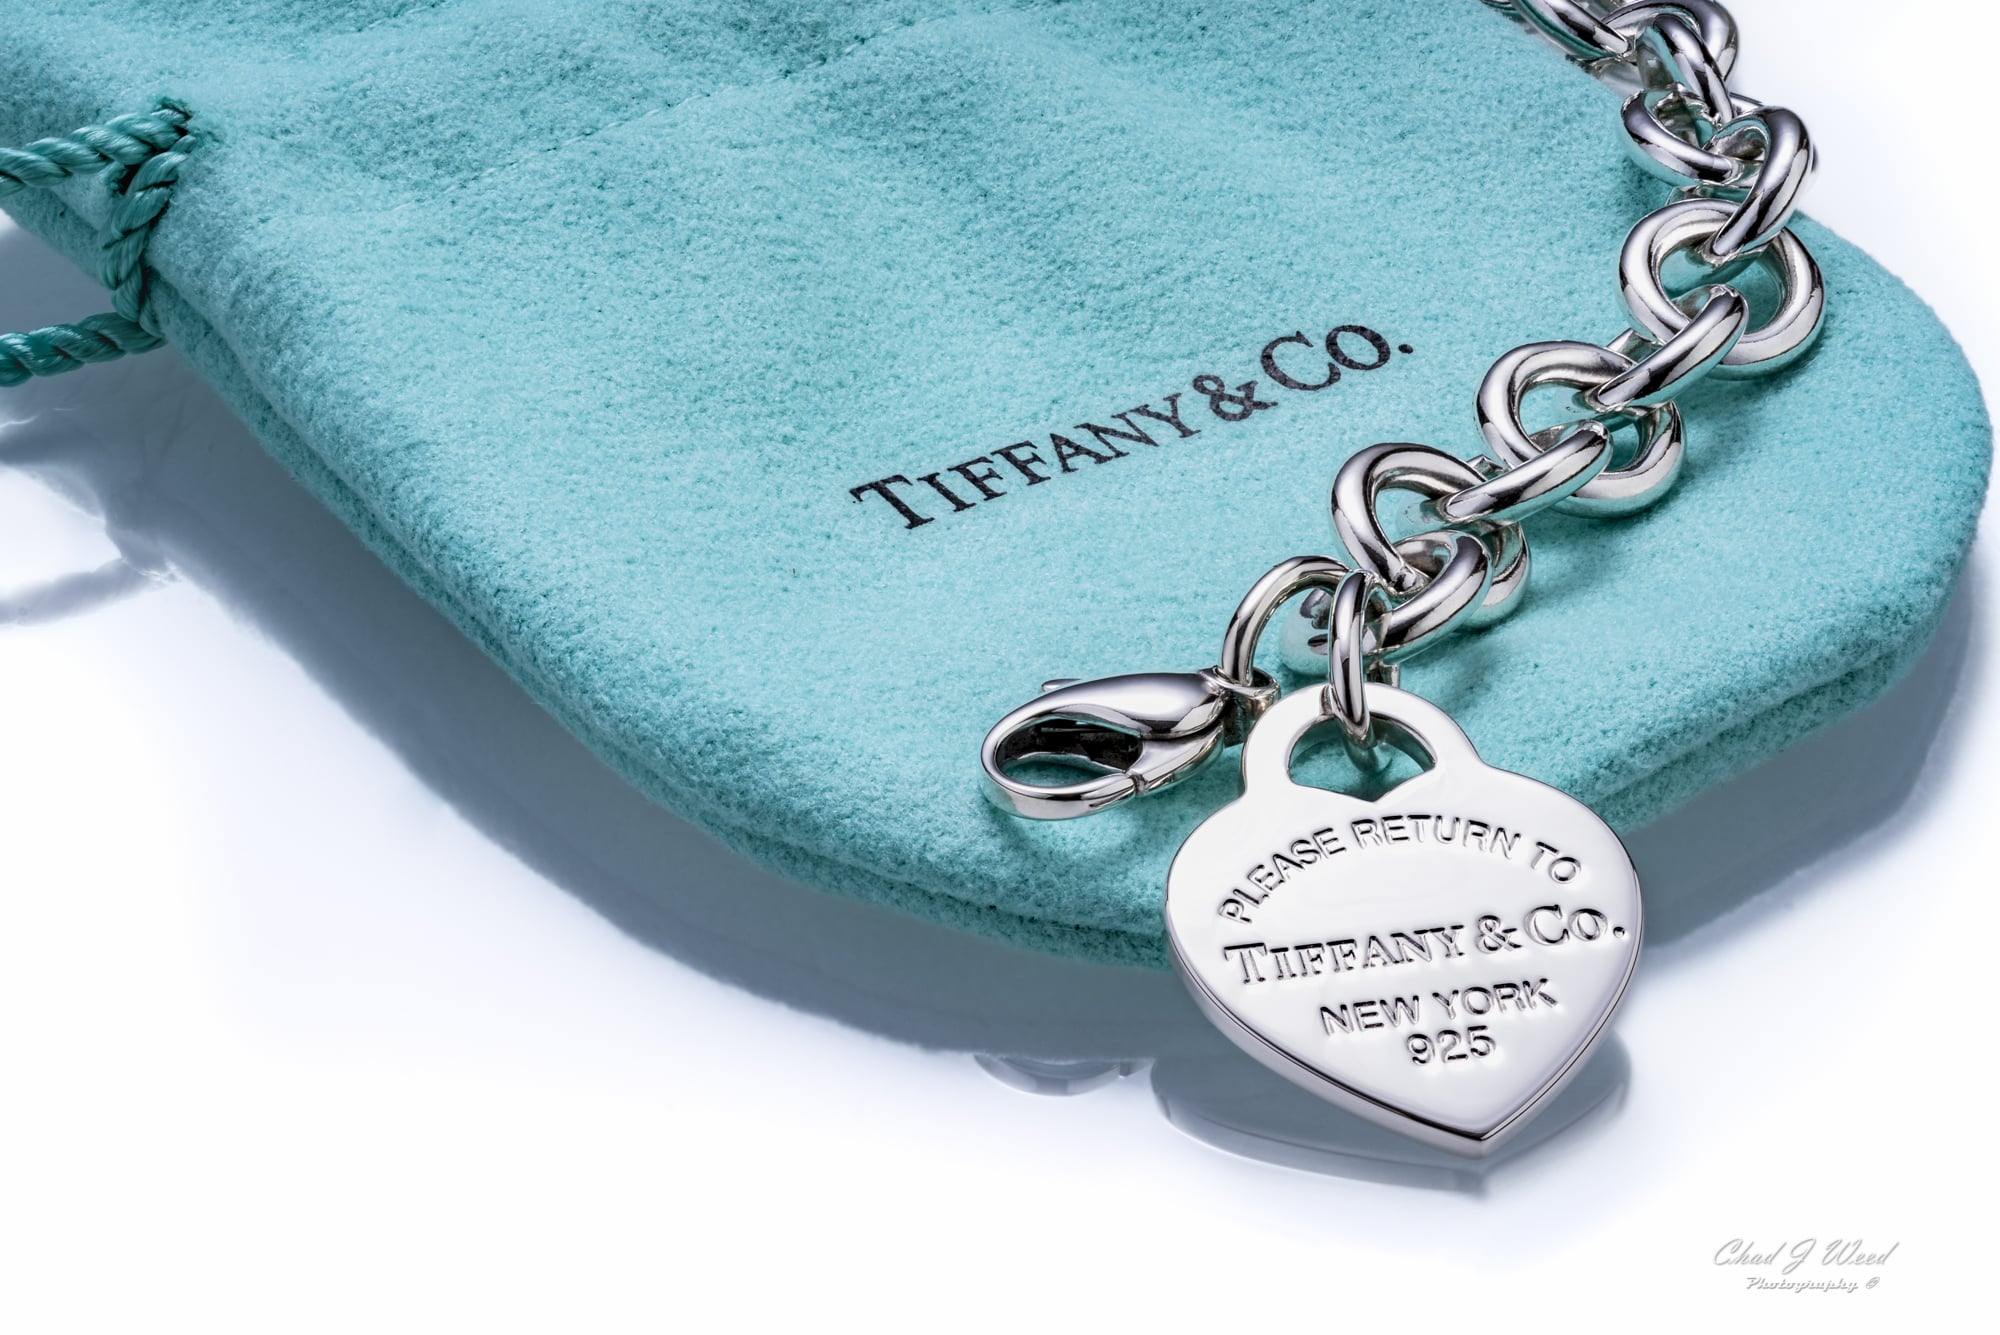 Tiffany Heart Charm Bracelet Commercial Photographer Chad J Weed